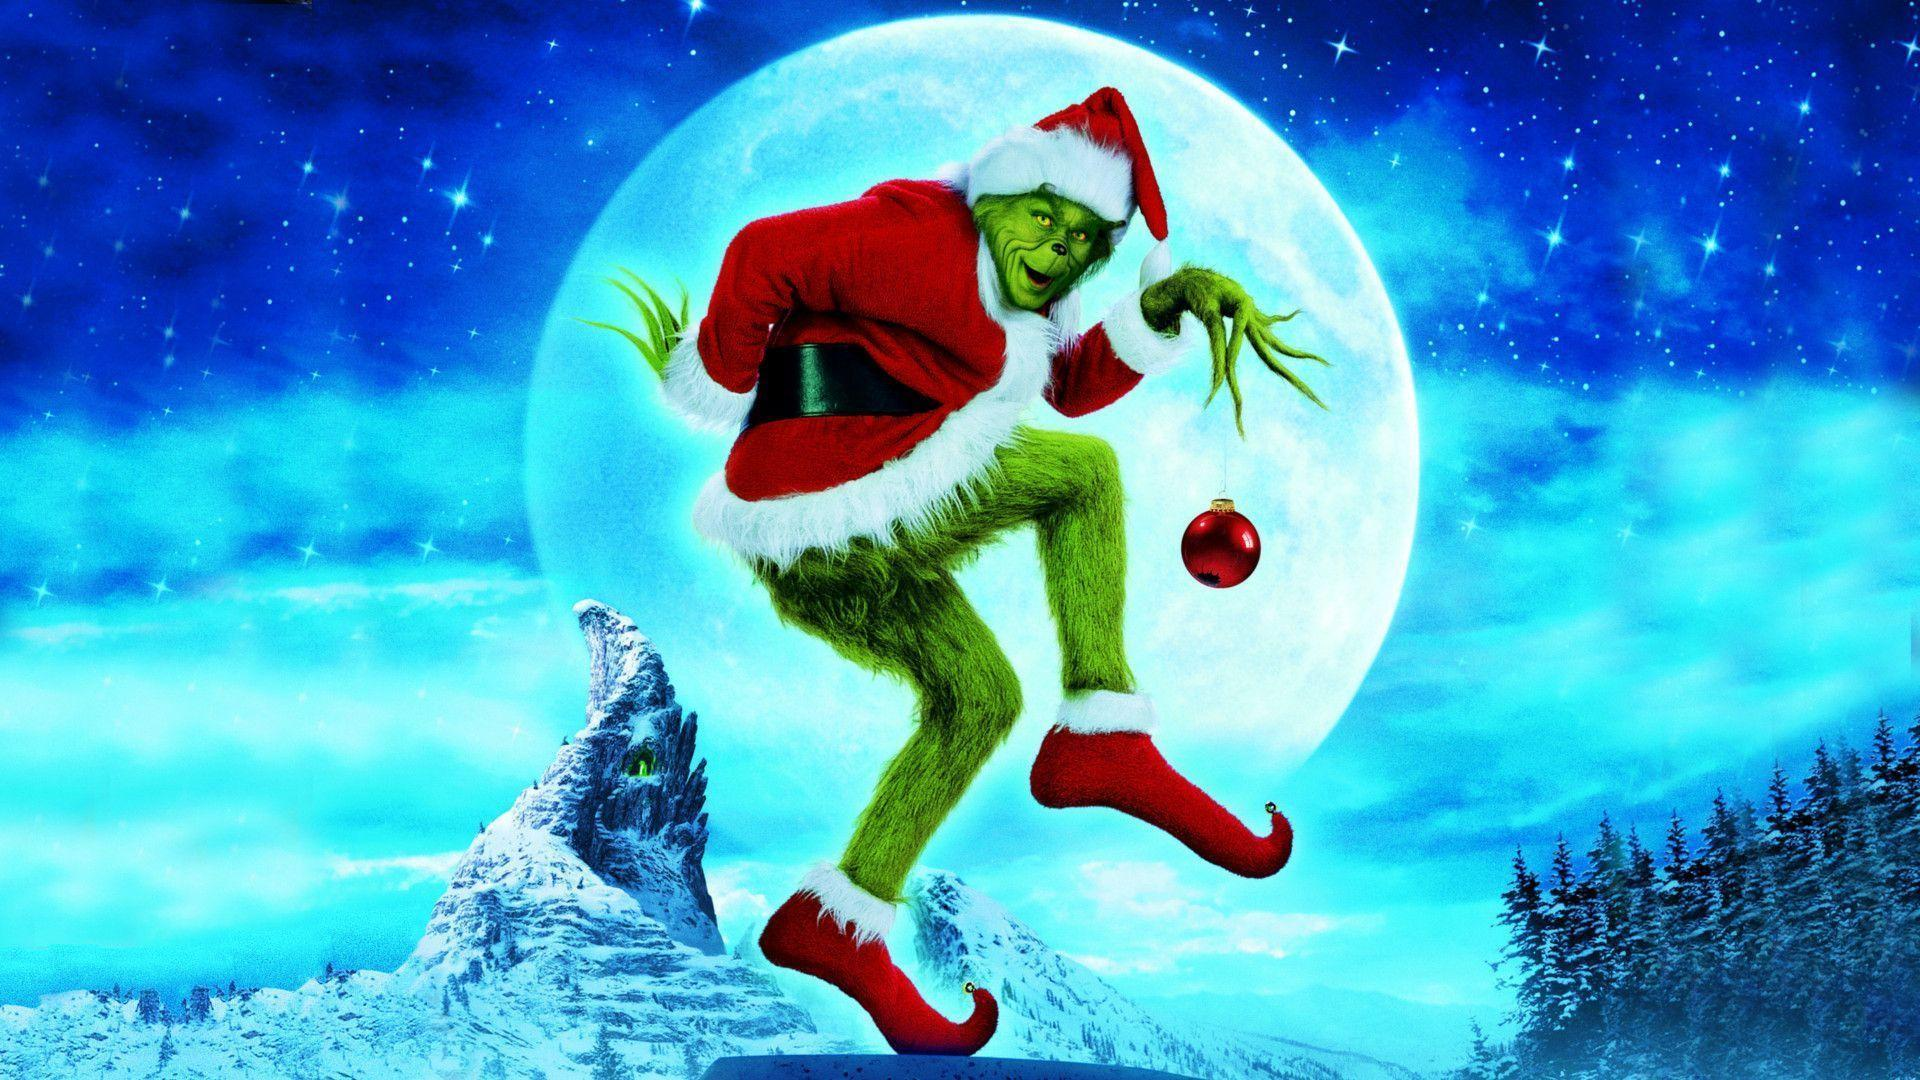 Grinch Wallpapers , Top Free Grinch Backgrounds